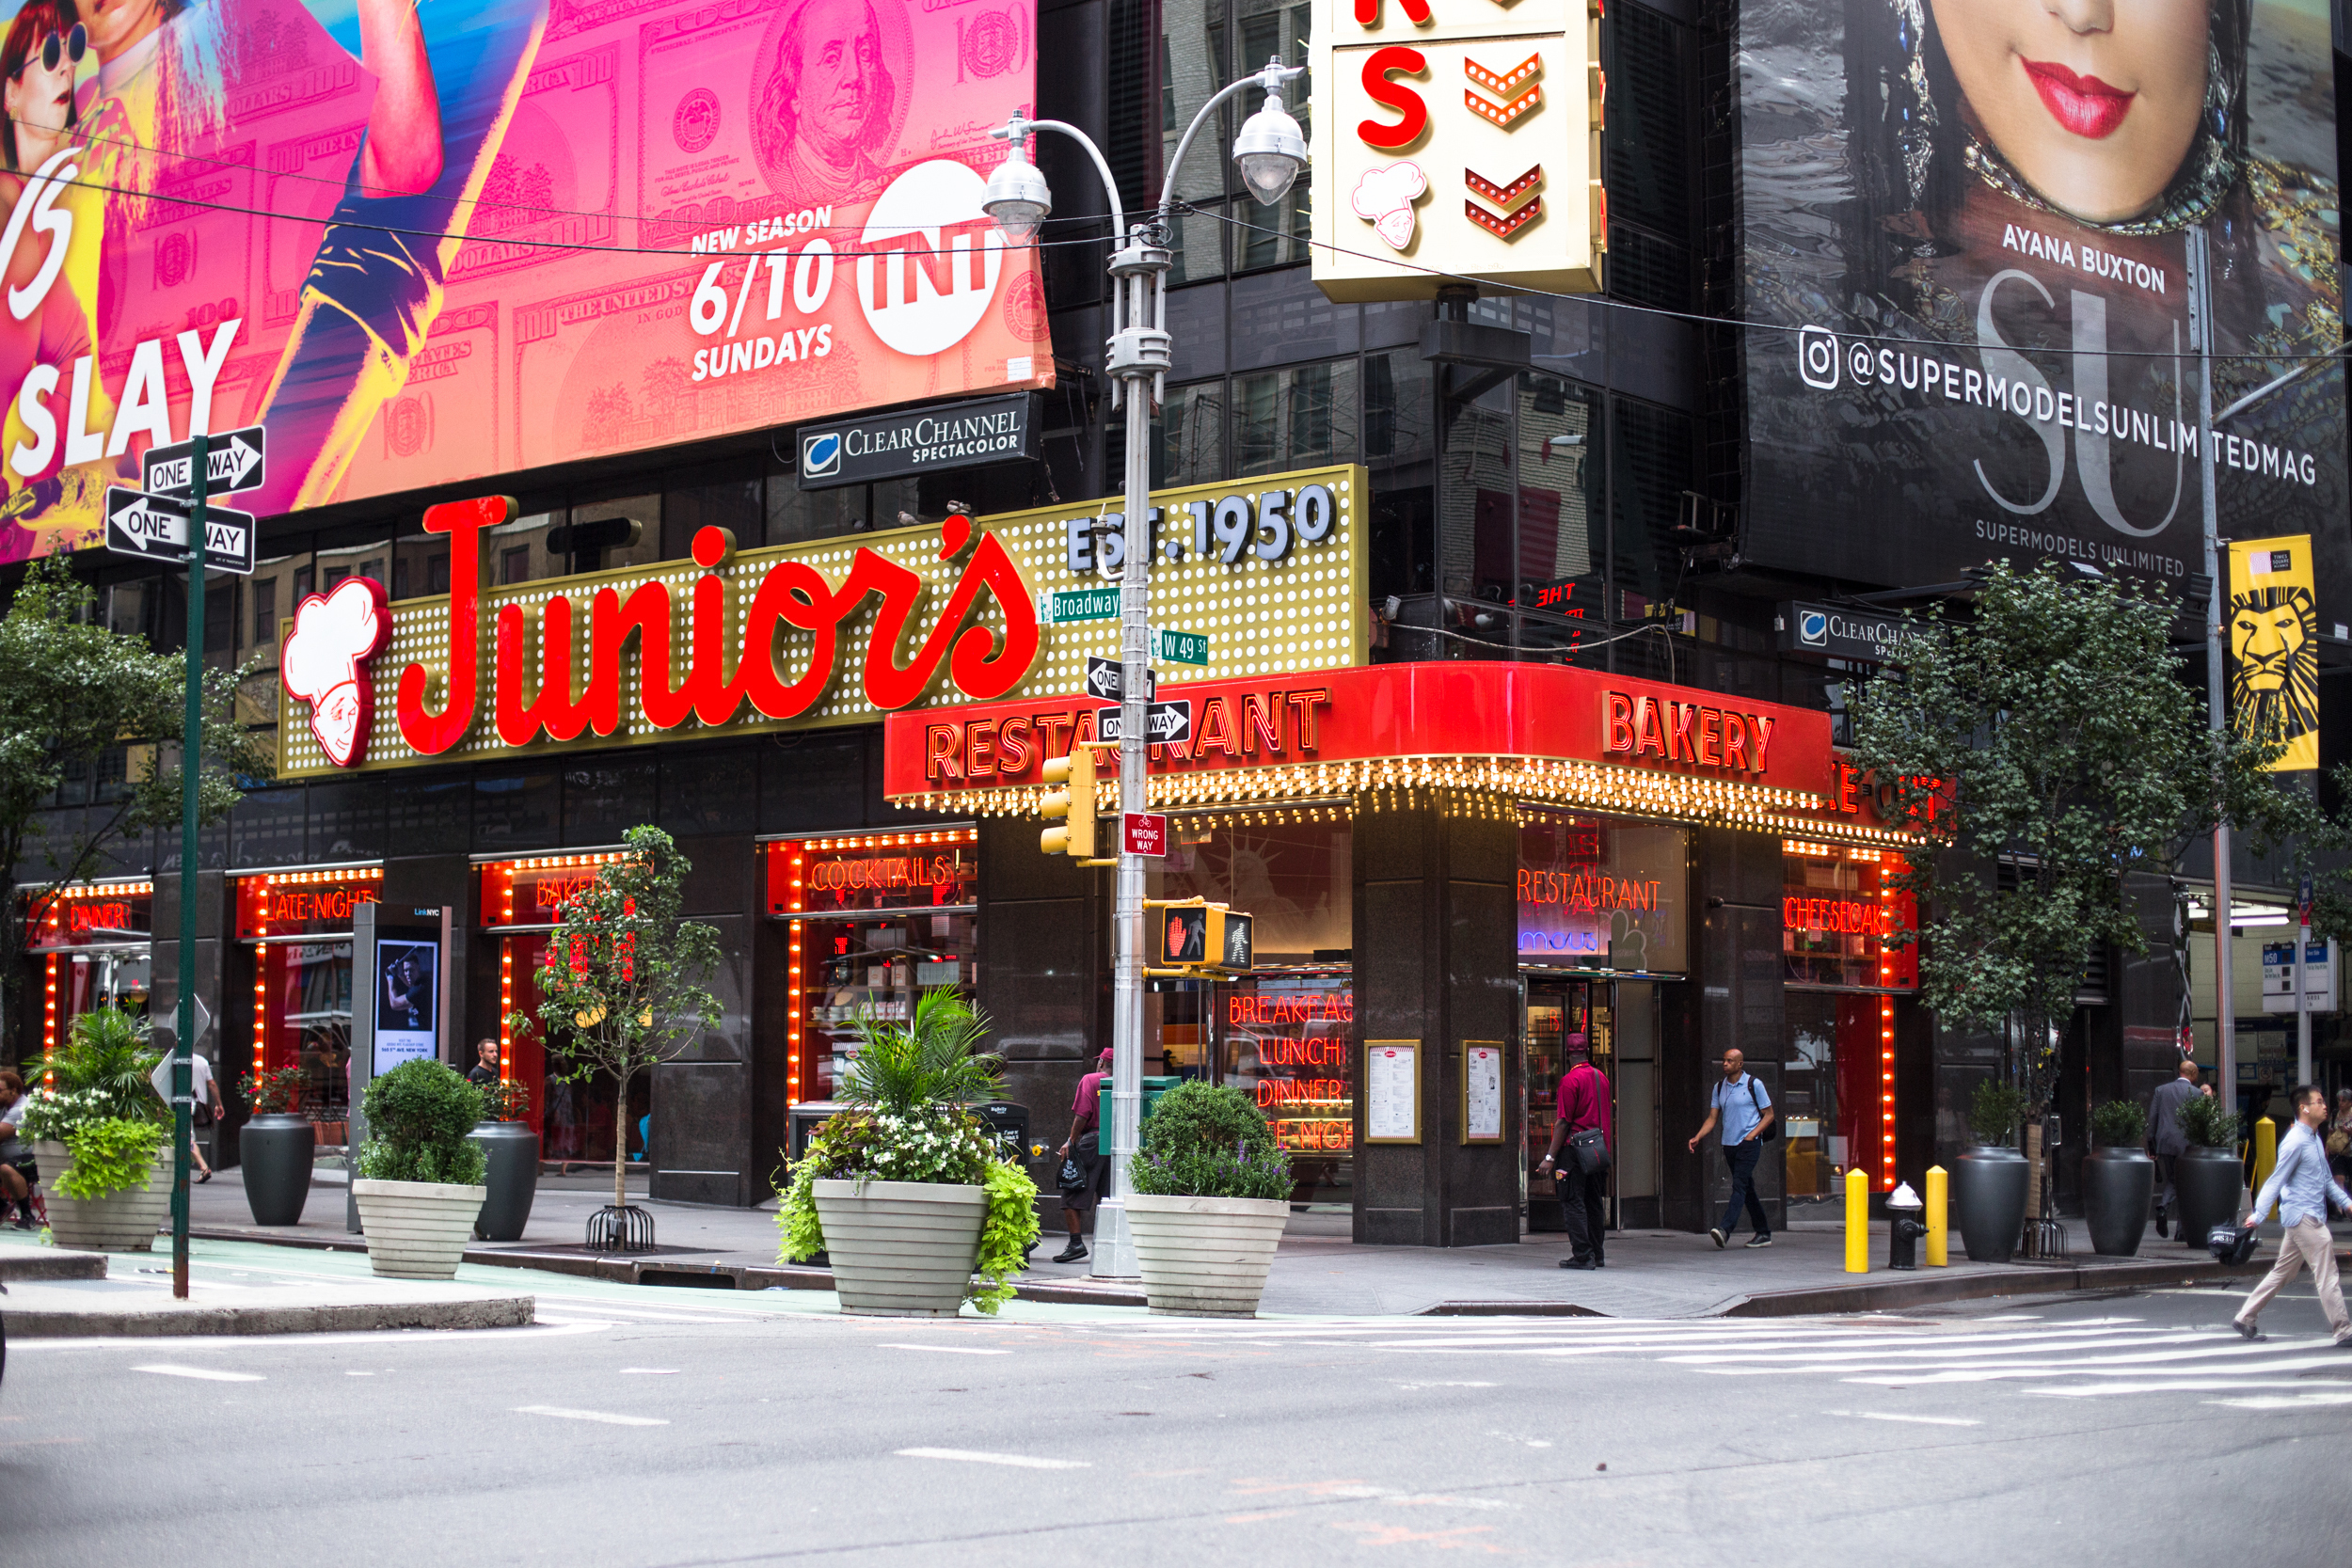 Fun restaurants in NYC for kids and families